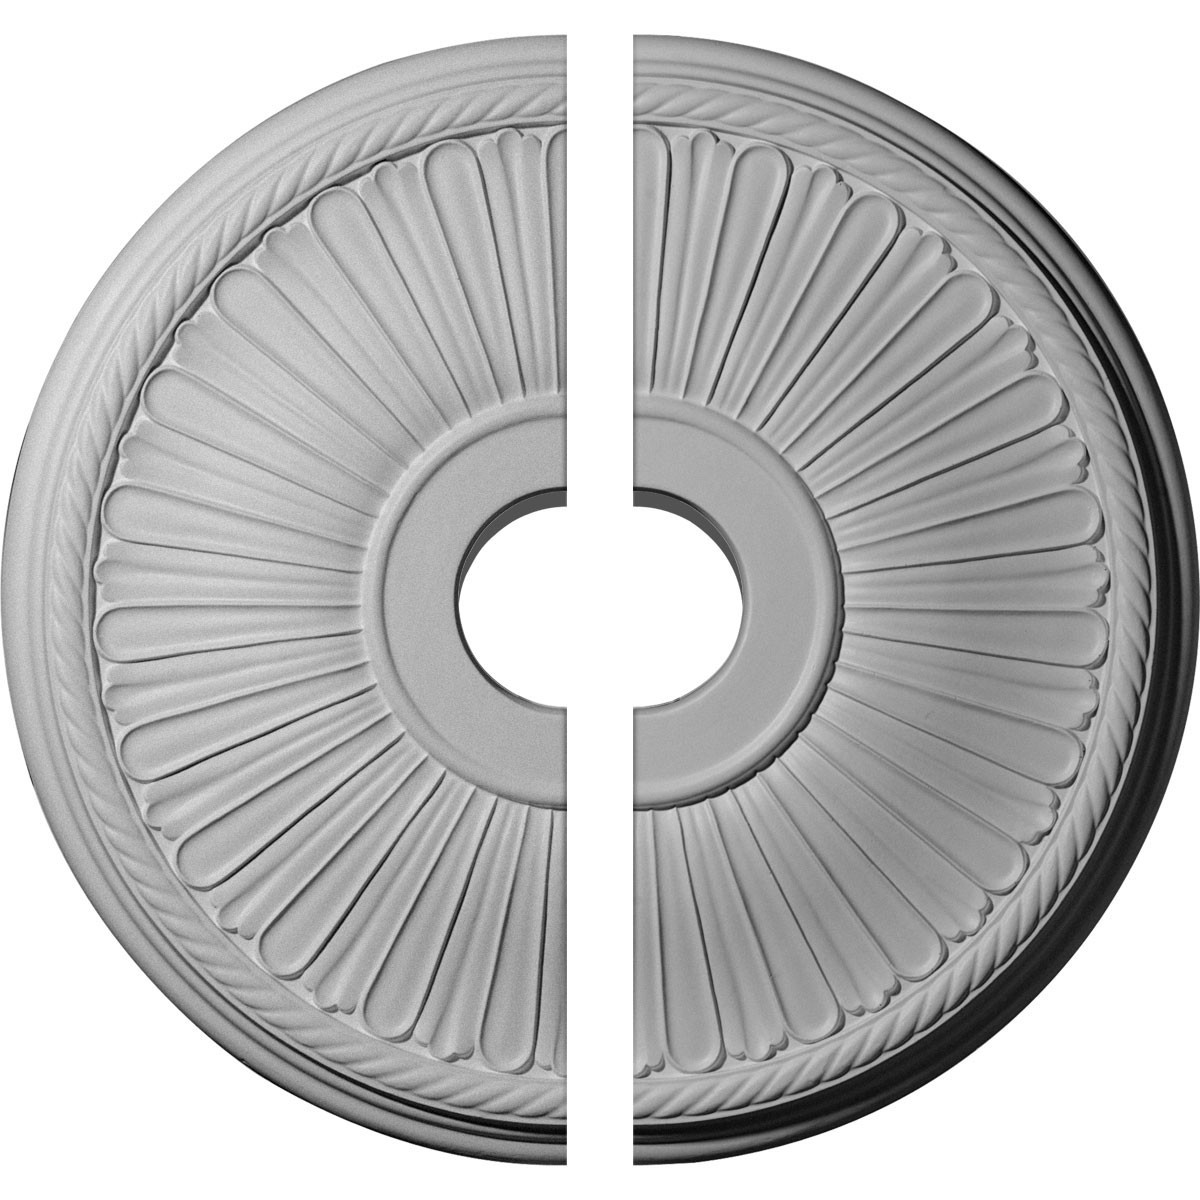 "EM-CM20BE12 - 20 1/8""OD x 3 7/8""ID x 1 7/8""P Berkshire Ceiling Medallion, Two Piece (Fits Canopies up to 6 3/8"")"